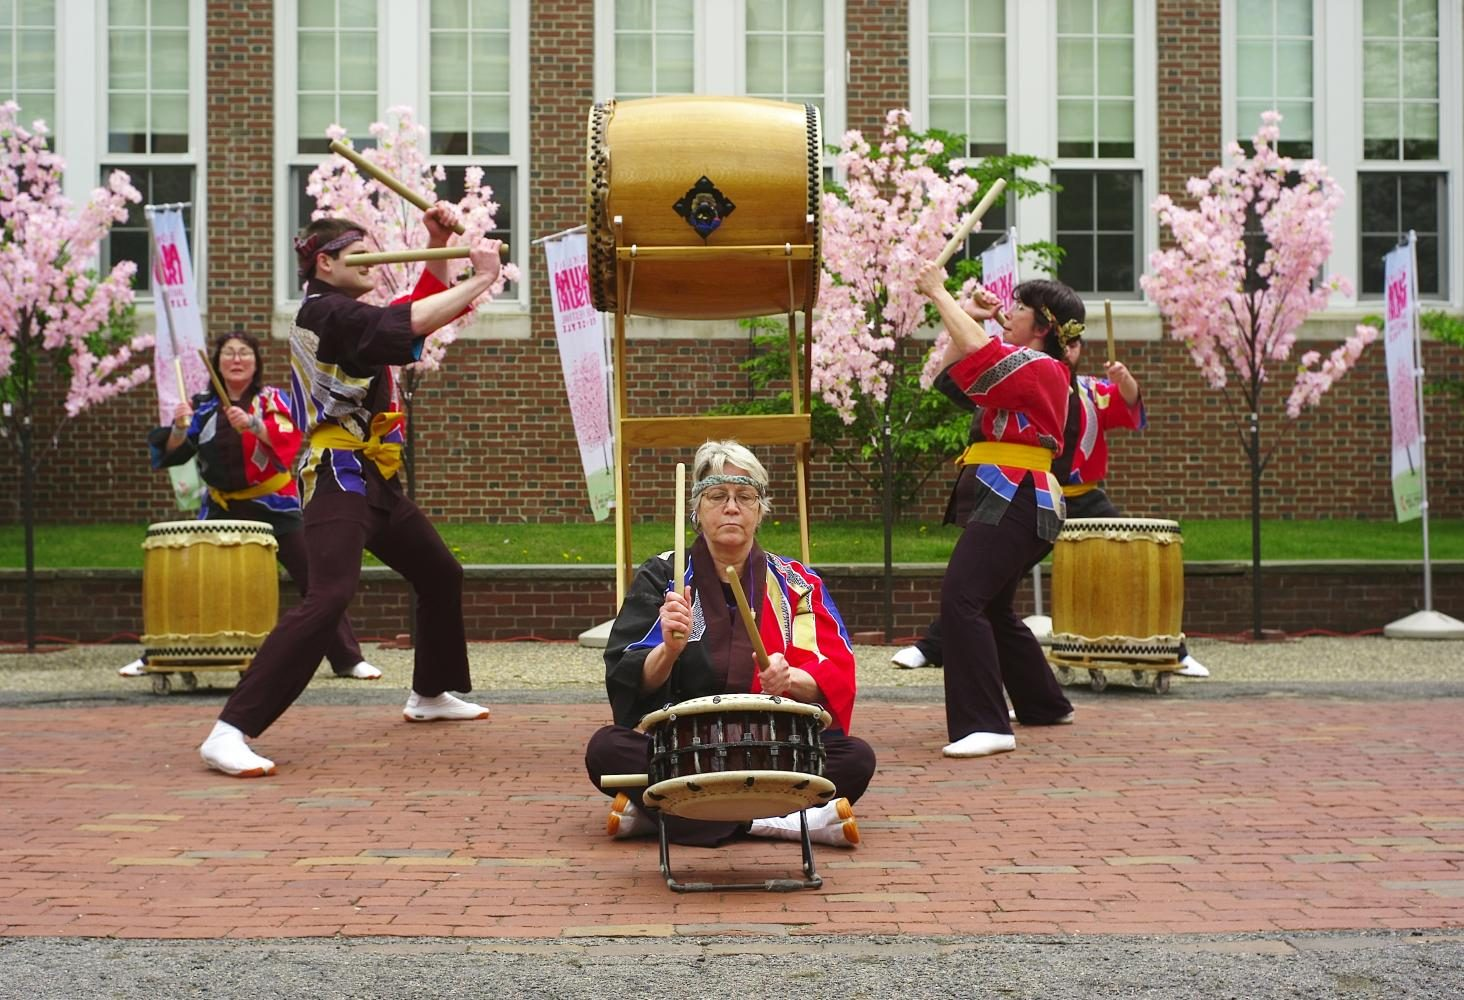 Kathleen+Joss+leads+the+drummers+of+Odaiko+New+England.+The+ensemble+drumming+group+plays+the+taiko+drum%2C+a+type+of+Japanese+drum.+%0AGabriel+Lee%2FSagamore+Staff